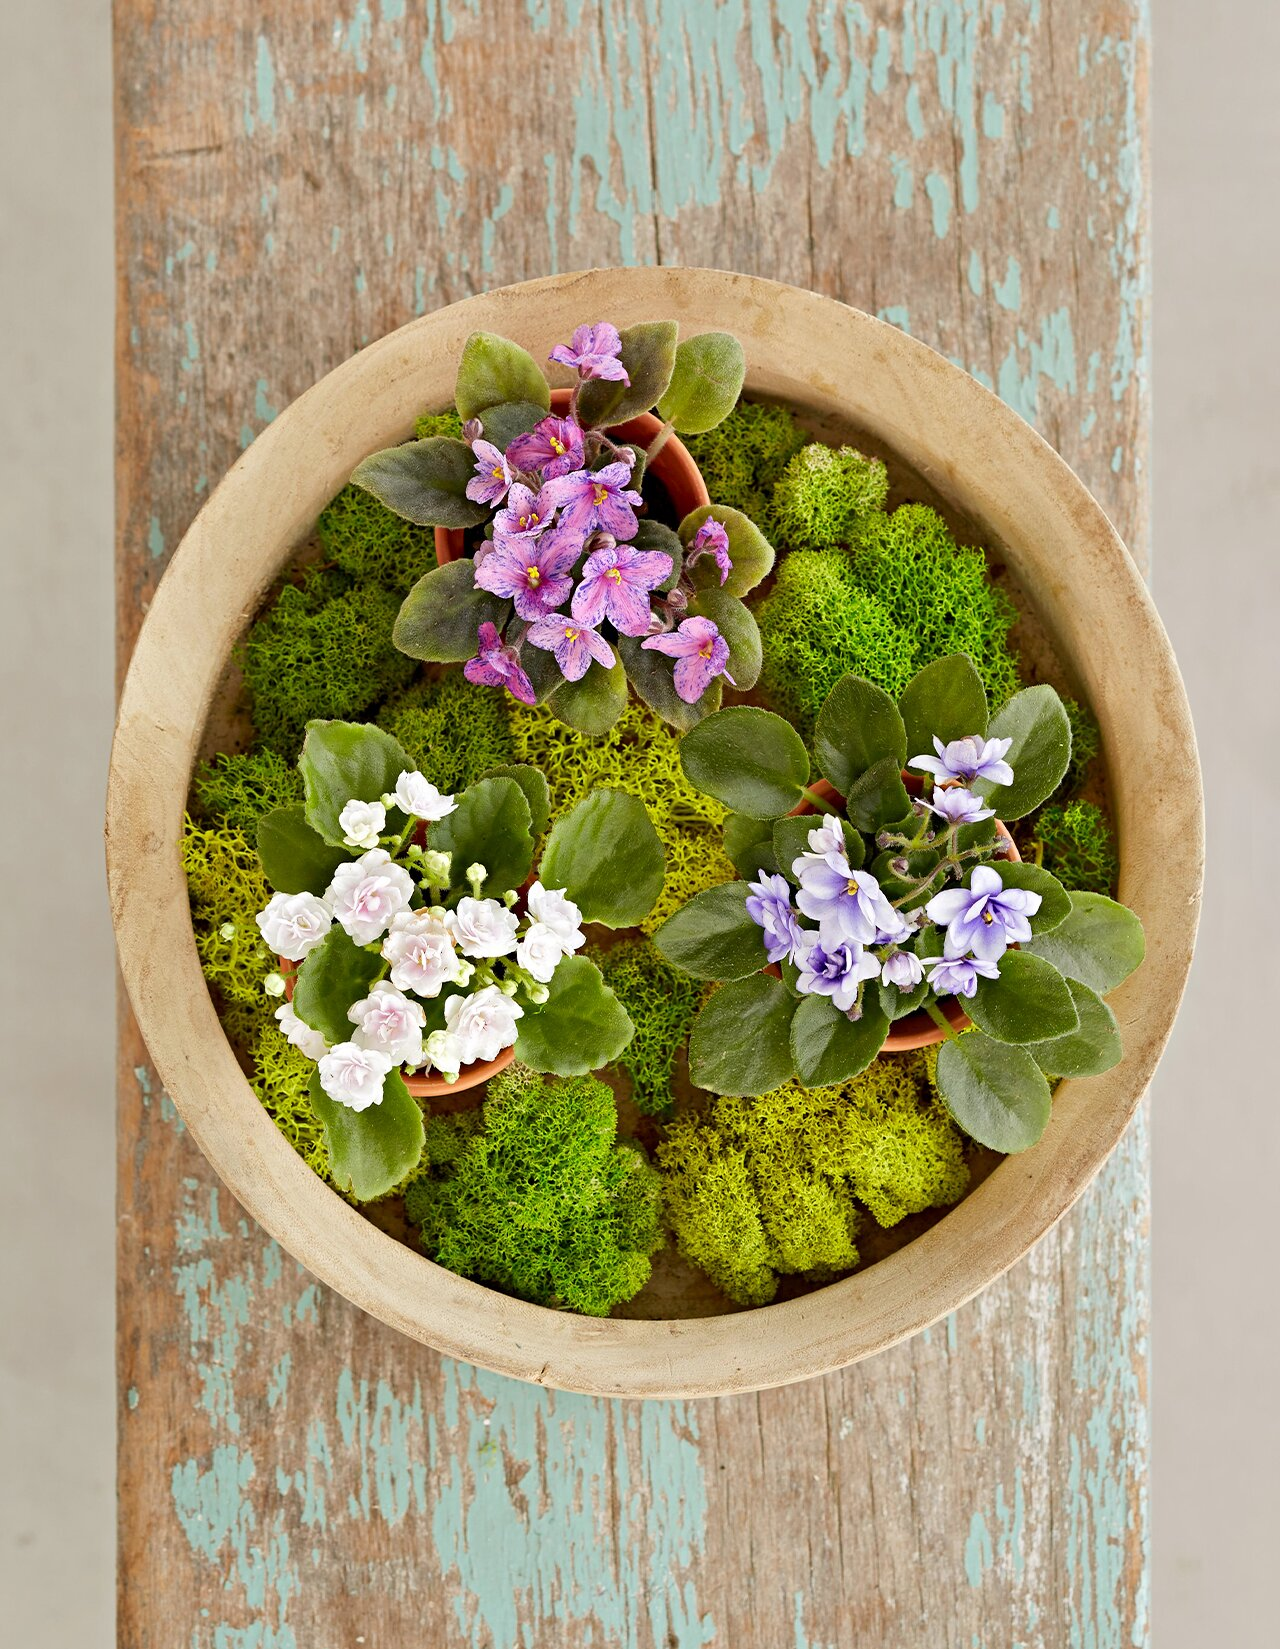 african violet and moss in planter birds-eye view